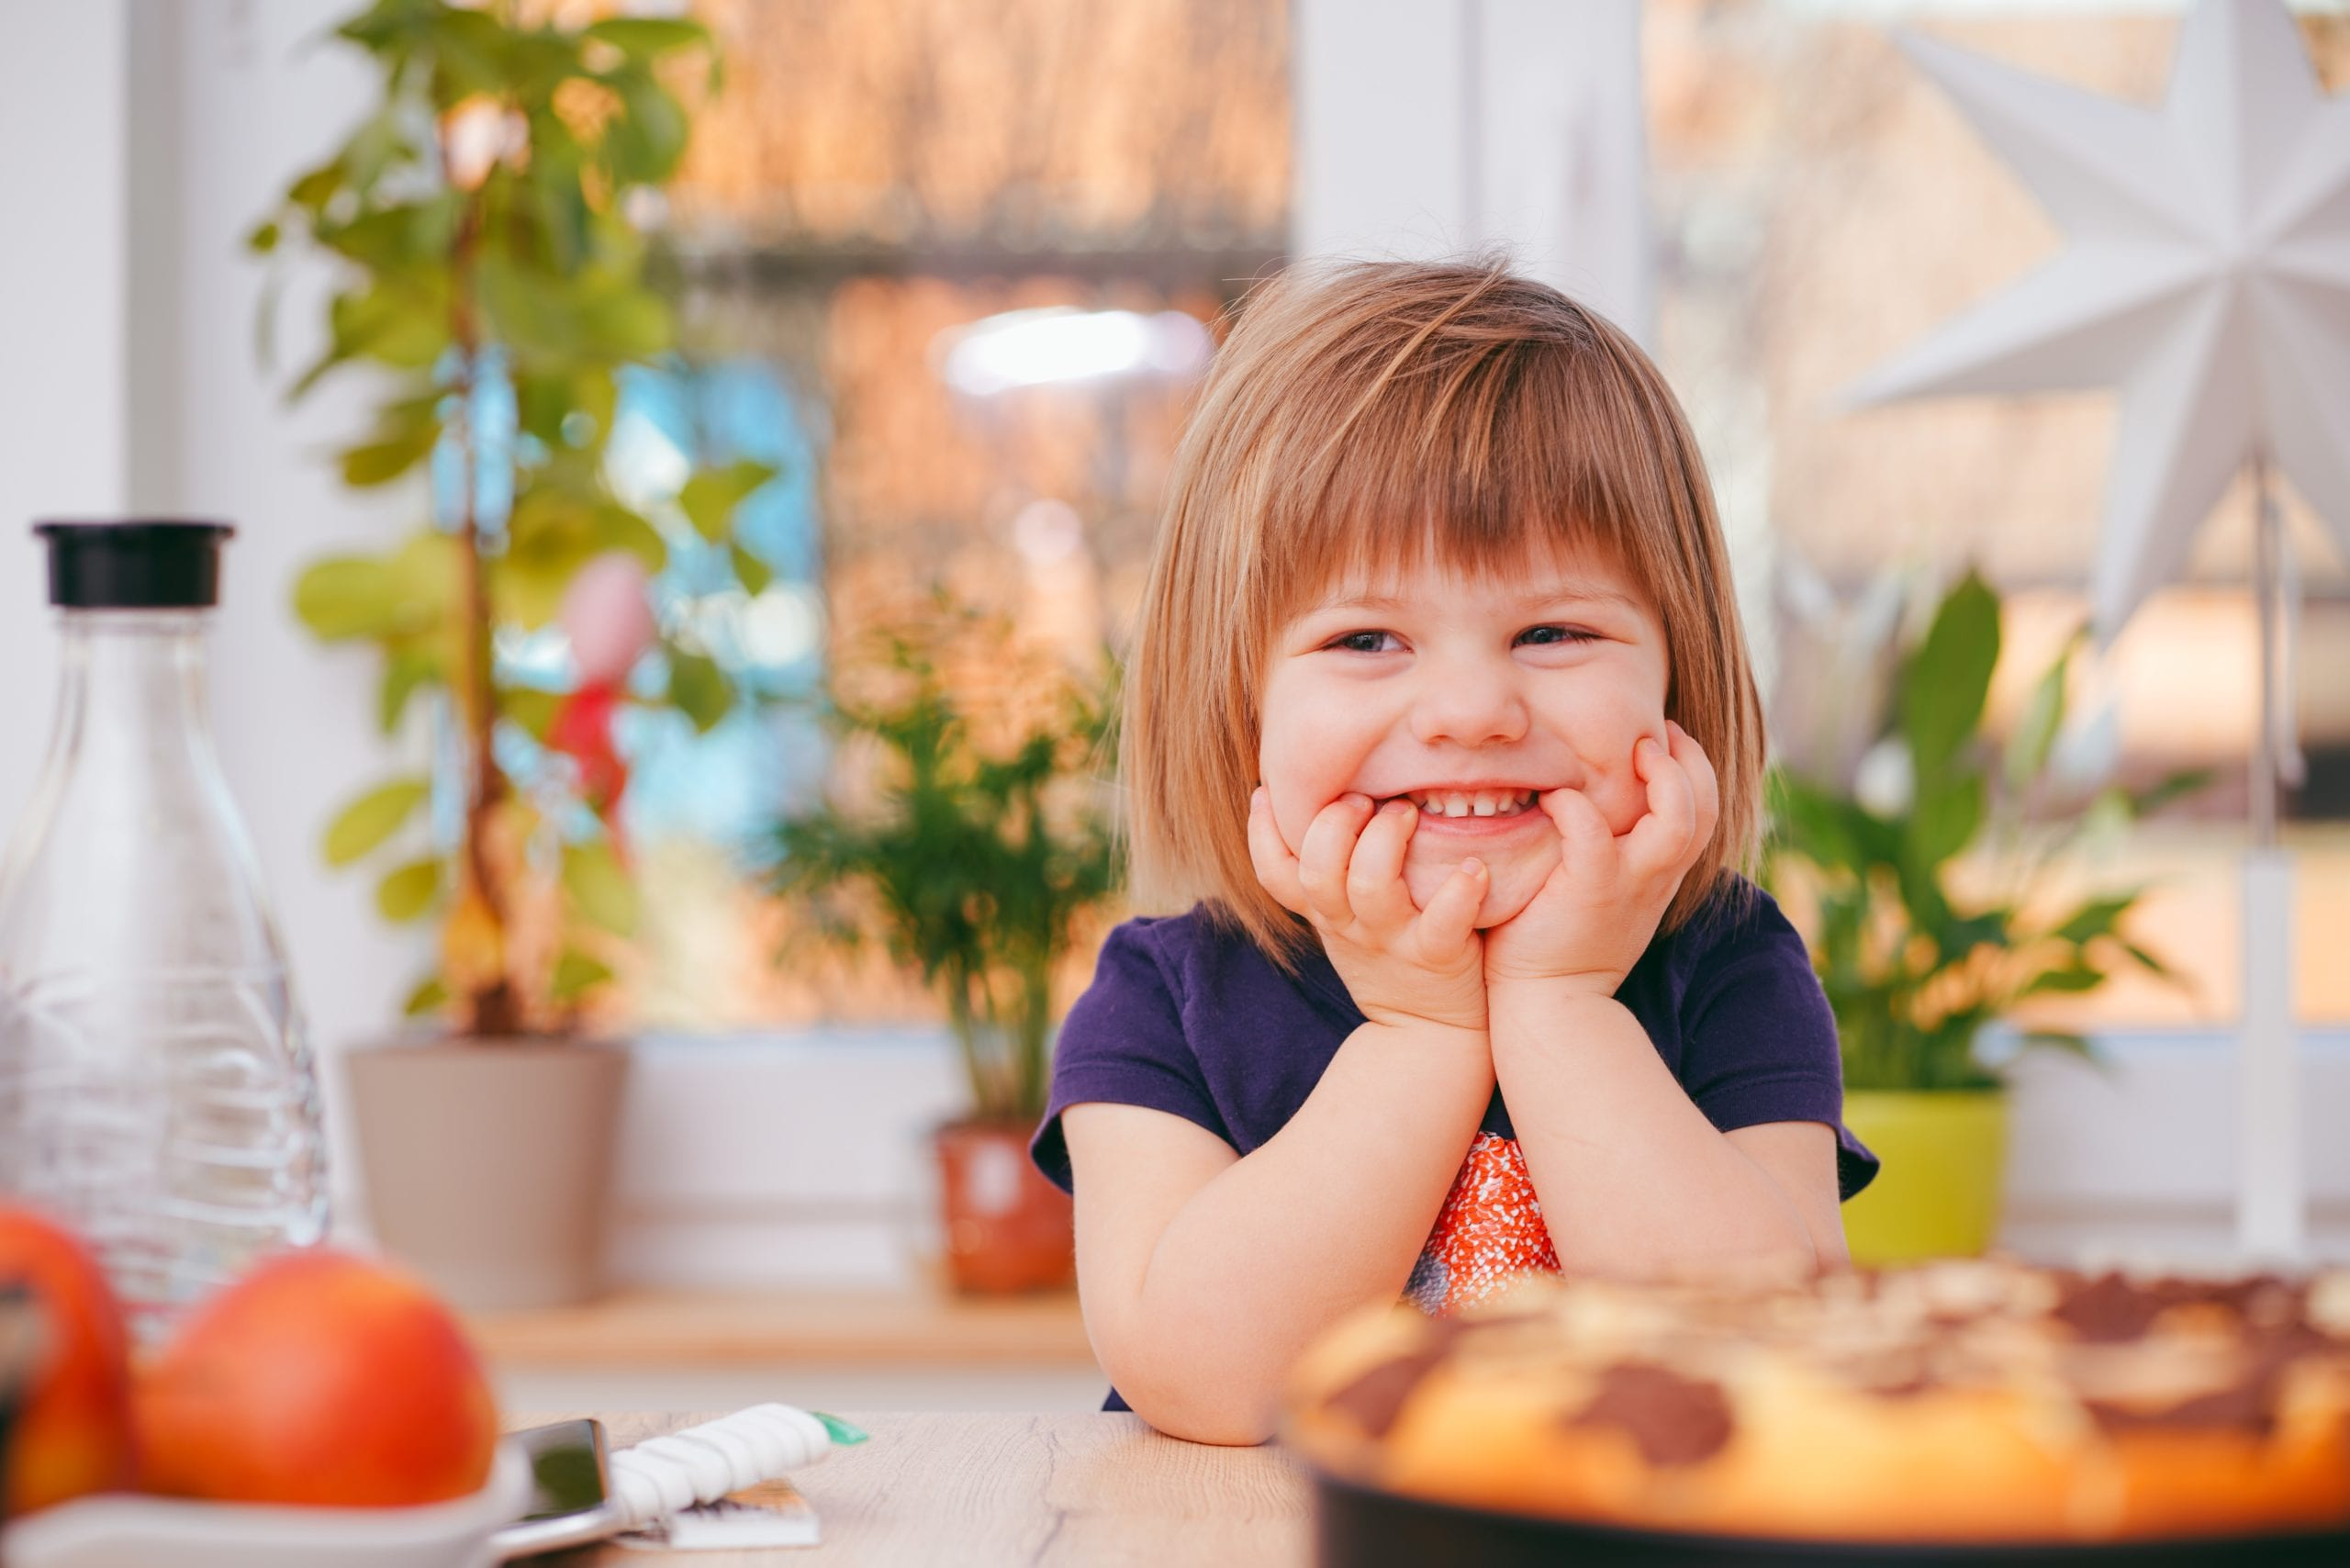 Toddler Grinning while Sitting on a Dining Table